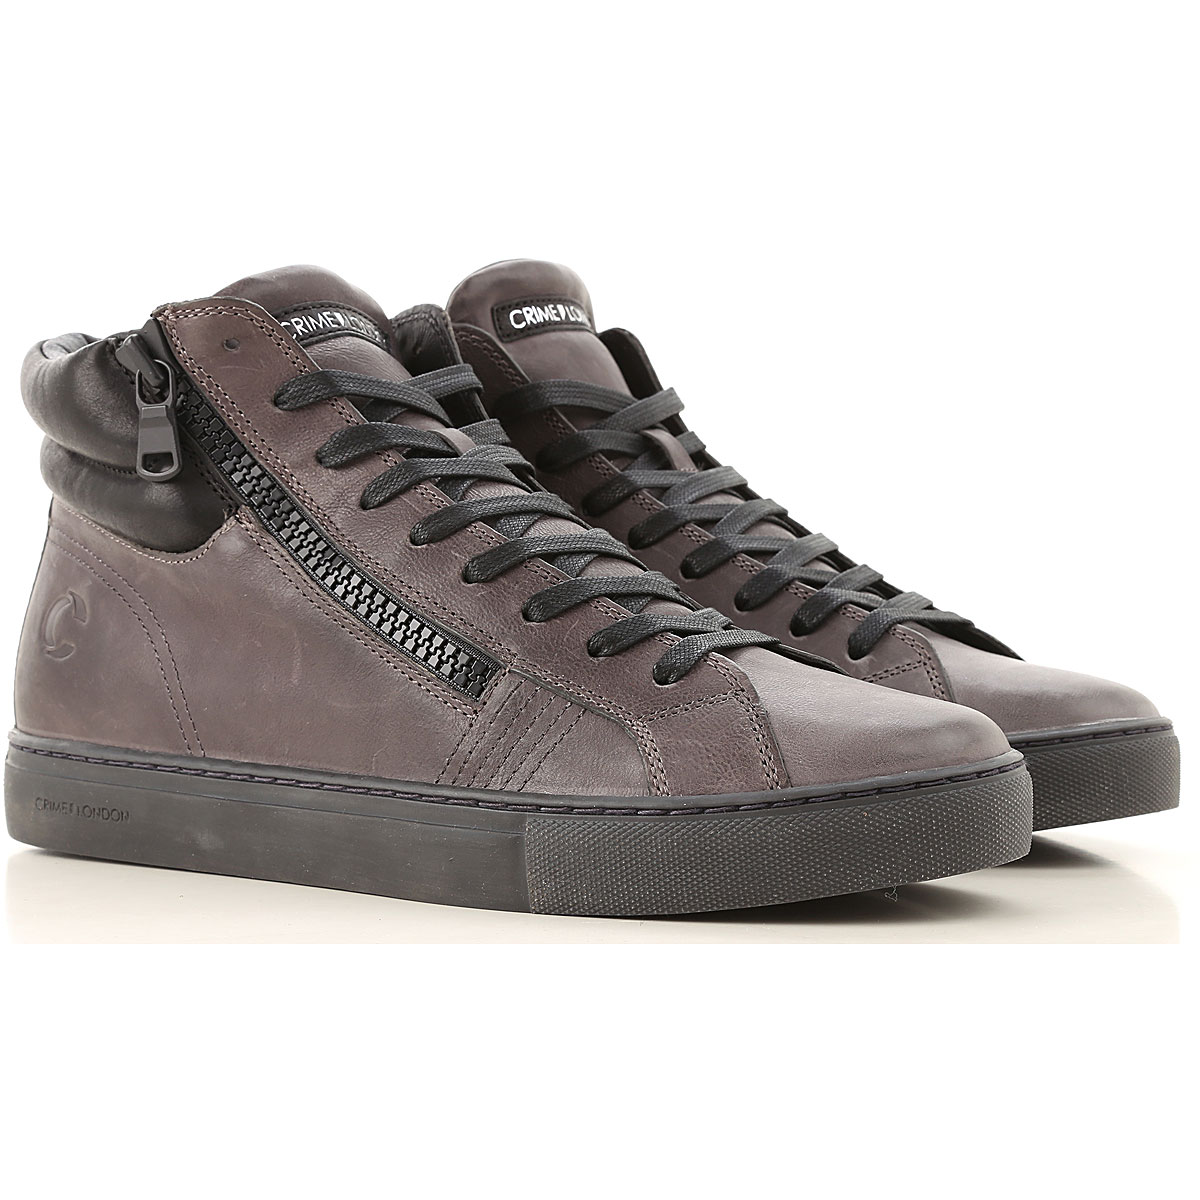 Crime Sneakers for Men On Sale, Dark Grey, Leather, 2019, 10 10.5 11.5 8 9